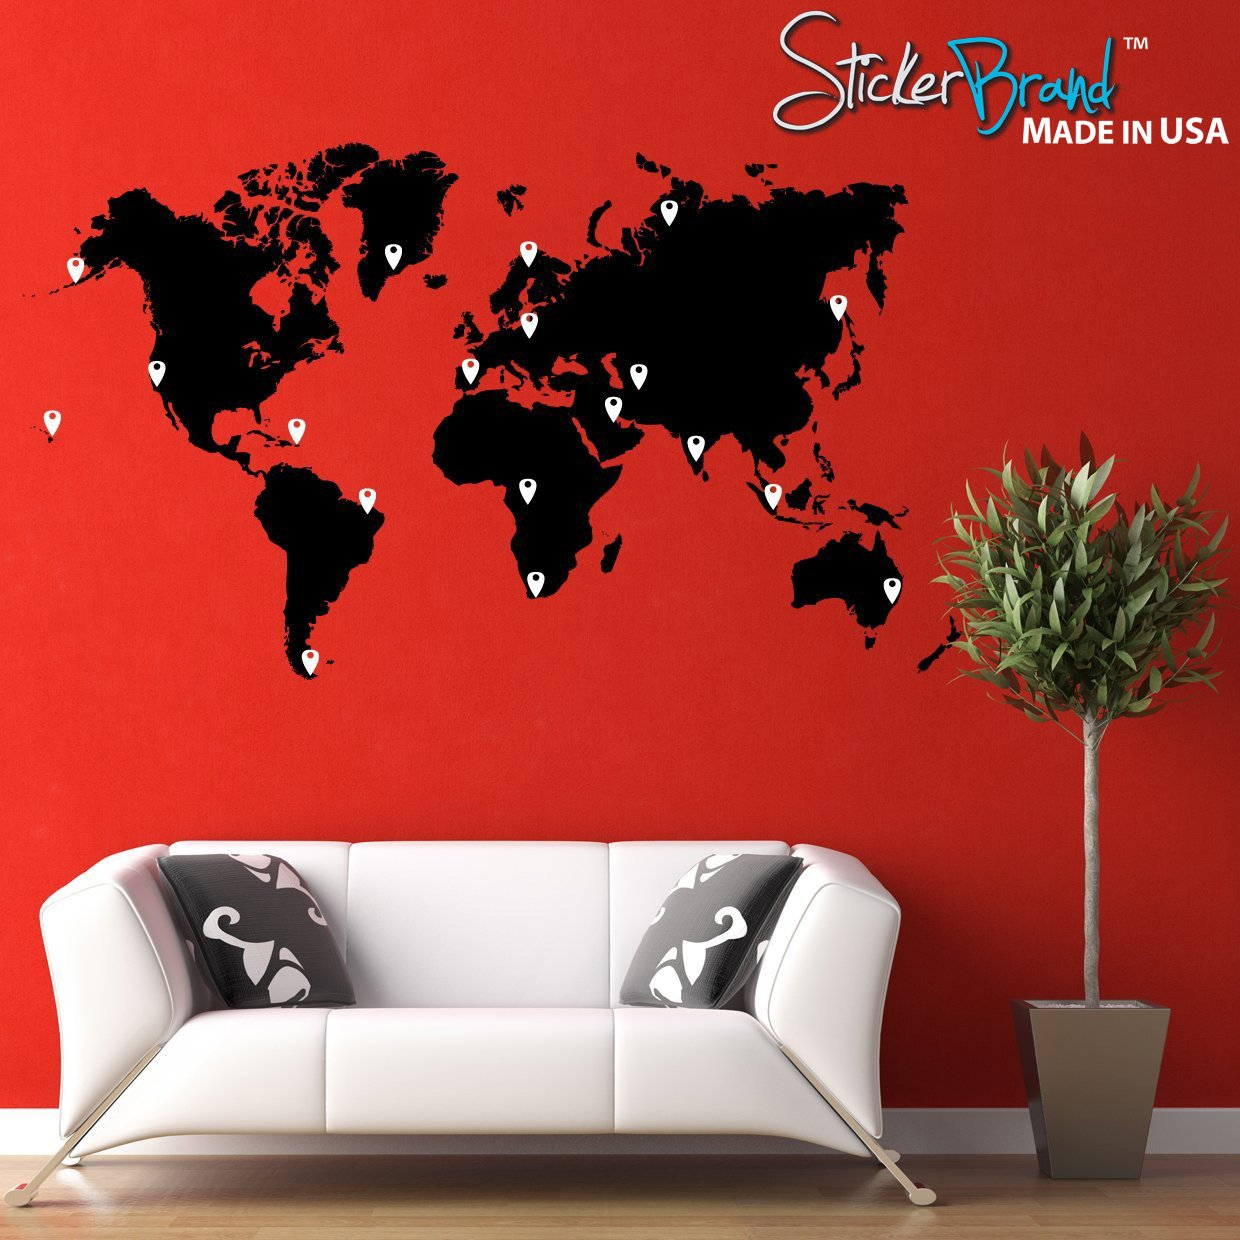 Amazon stickerbrand vinyl wall art world map of earth with pin amazon stickerbrand vinyl wall art world map of earth with pin drops wall decal sticker black map w red black white grey pins 40 x 70 gumiabroncs Gallery